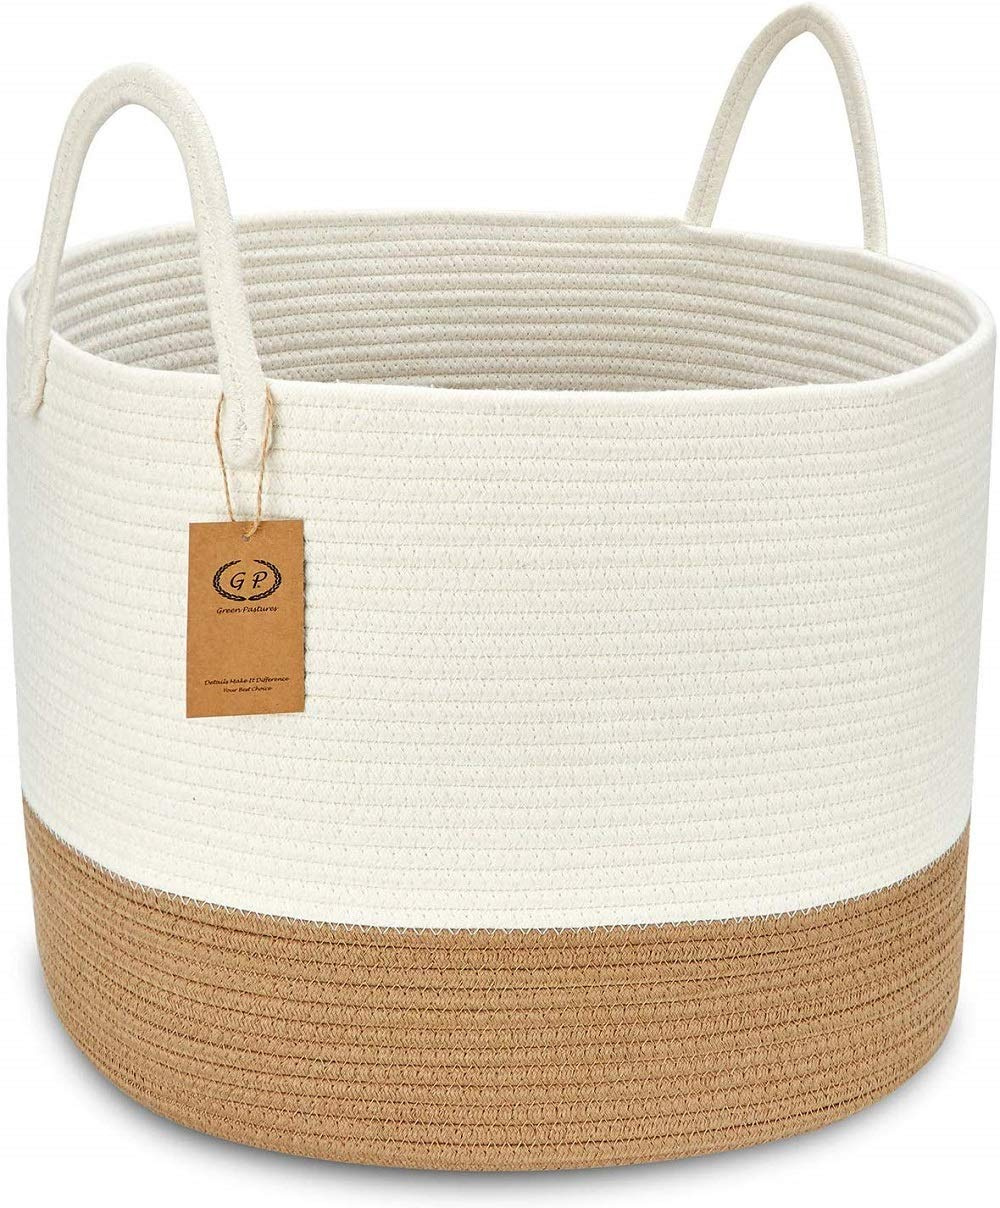 """GreenPastures XXL Woven Laundry Basket with Handles, 20'' x 15"""" Cotton Rope Basket for Organizing Baby Dogs Toys, Decorative Blanket Storage Basket in Living Room (Off White/Brown)"""